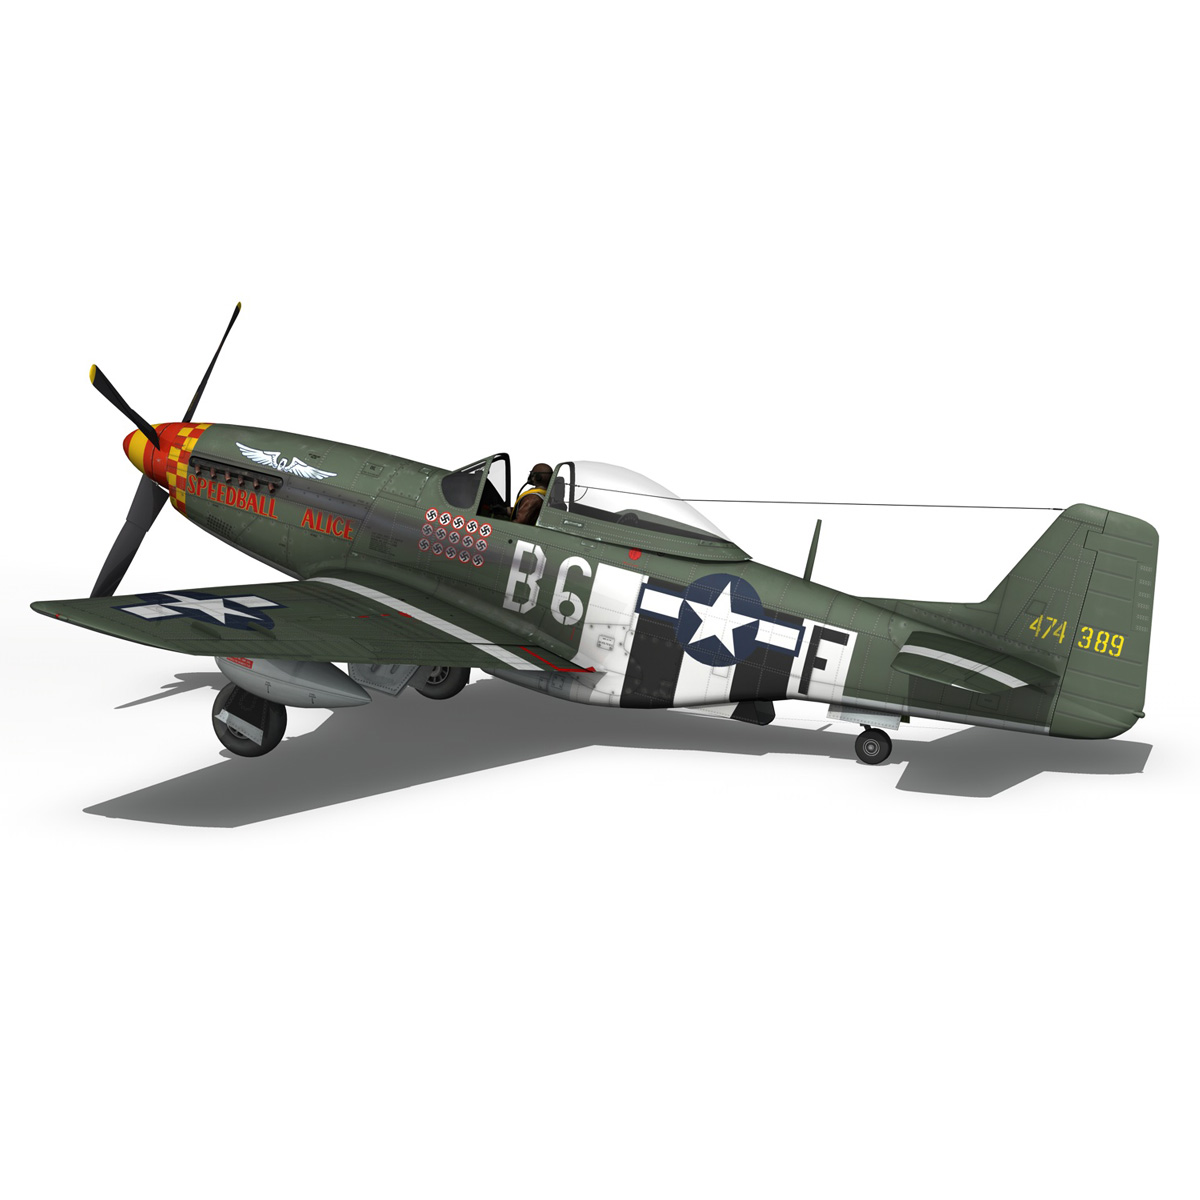 north american p-51d mustang – speedball alice 3d model fbx c4d lwo obj 280321